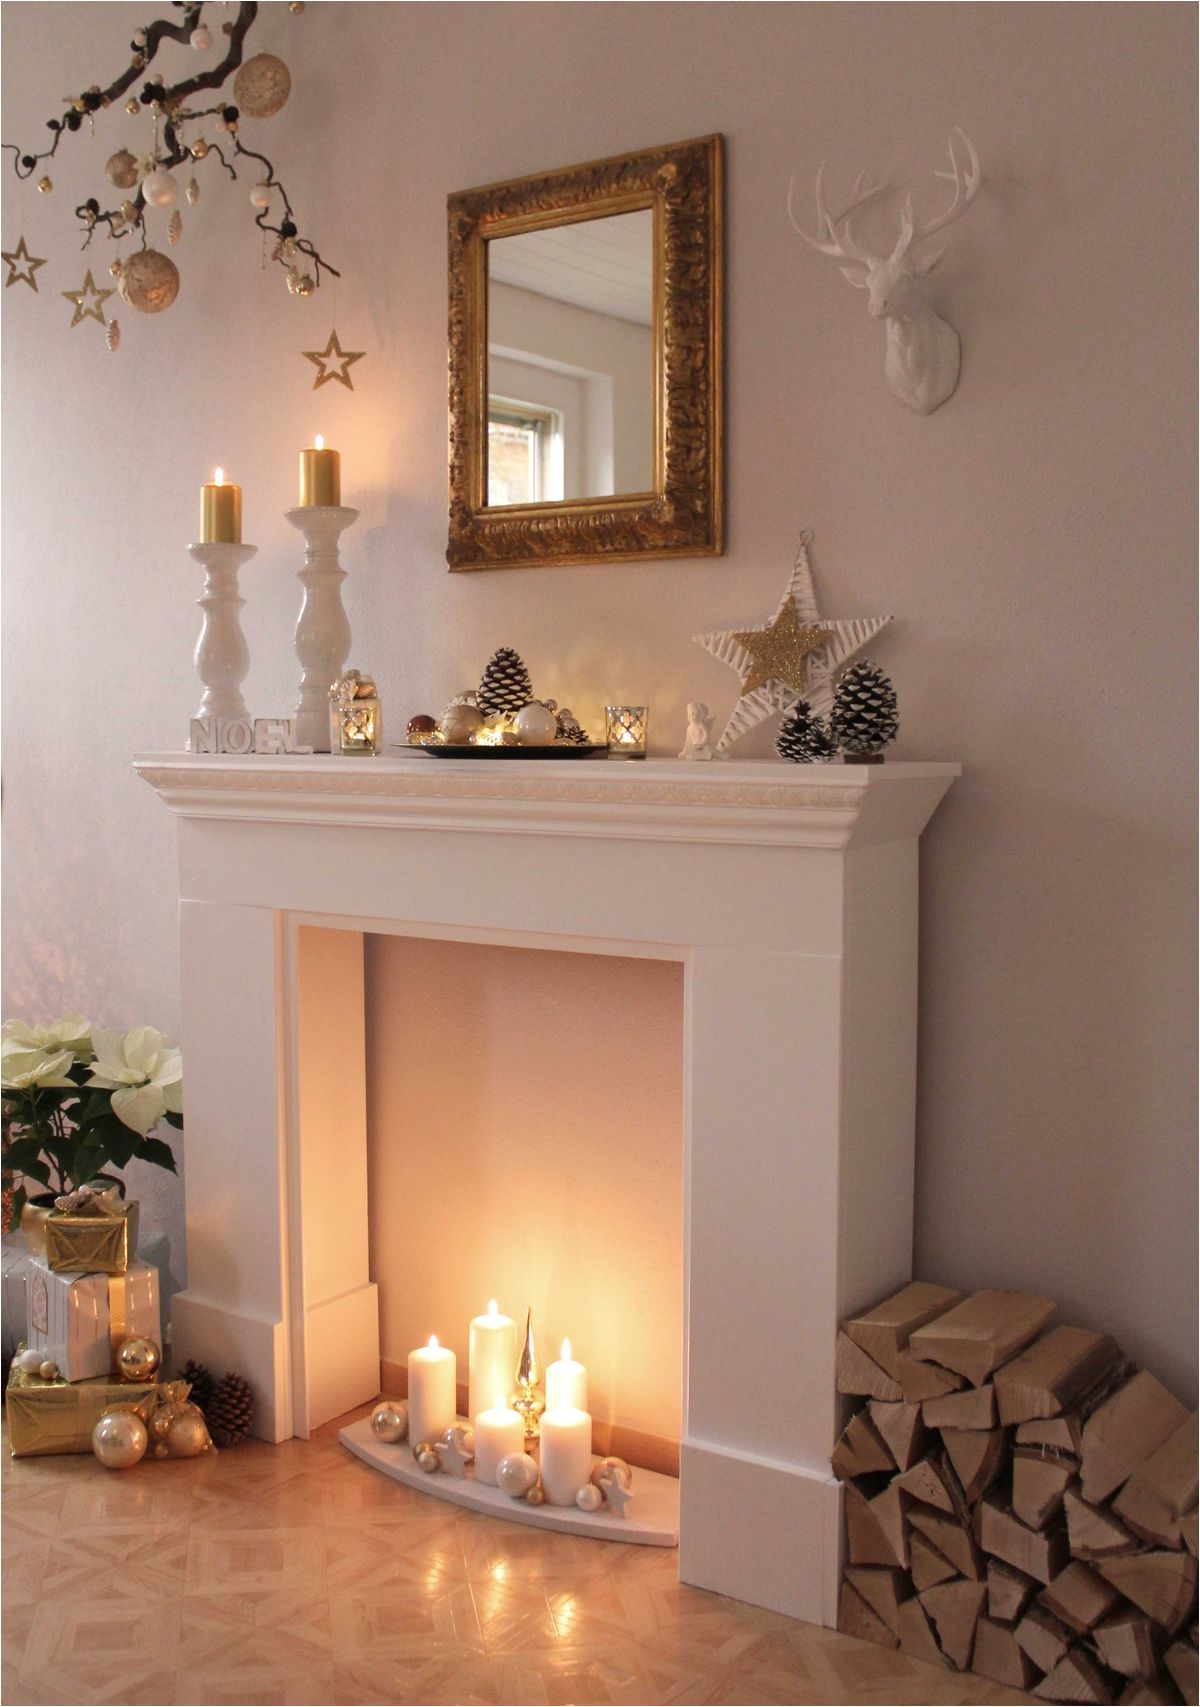 Hearthstone Fireplace Insert Inspirational How to Make Fake Fire for Fireplace